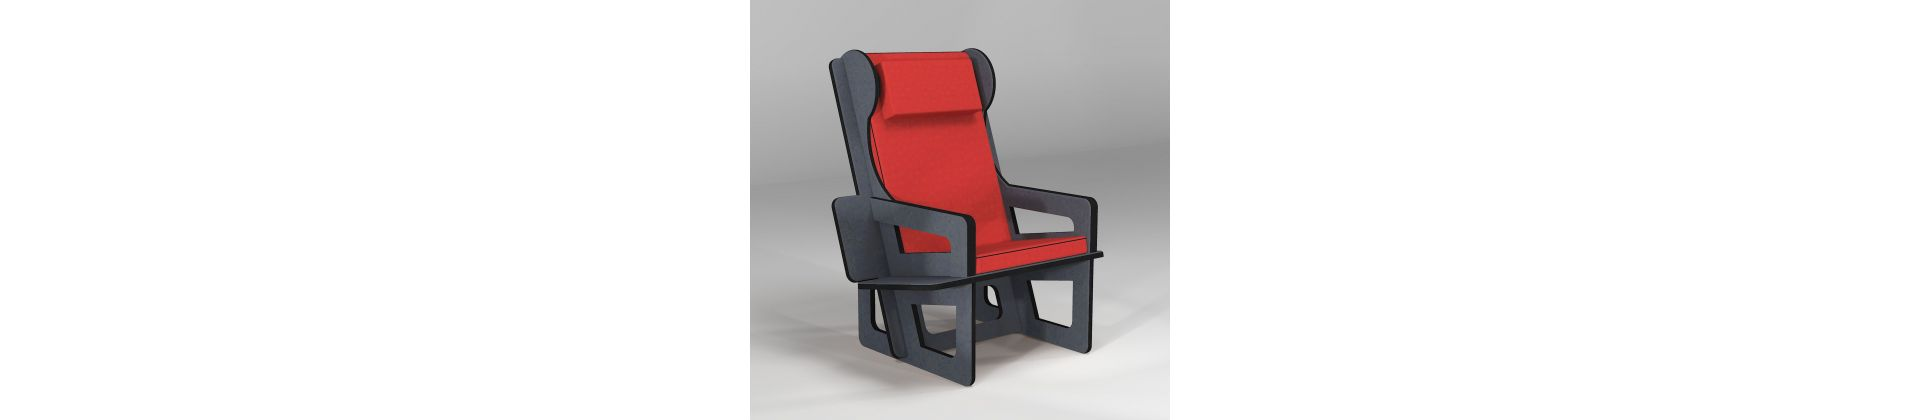 Armchair for elderly